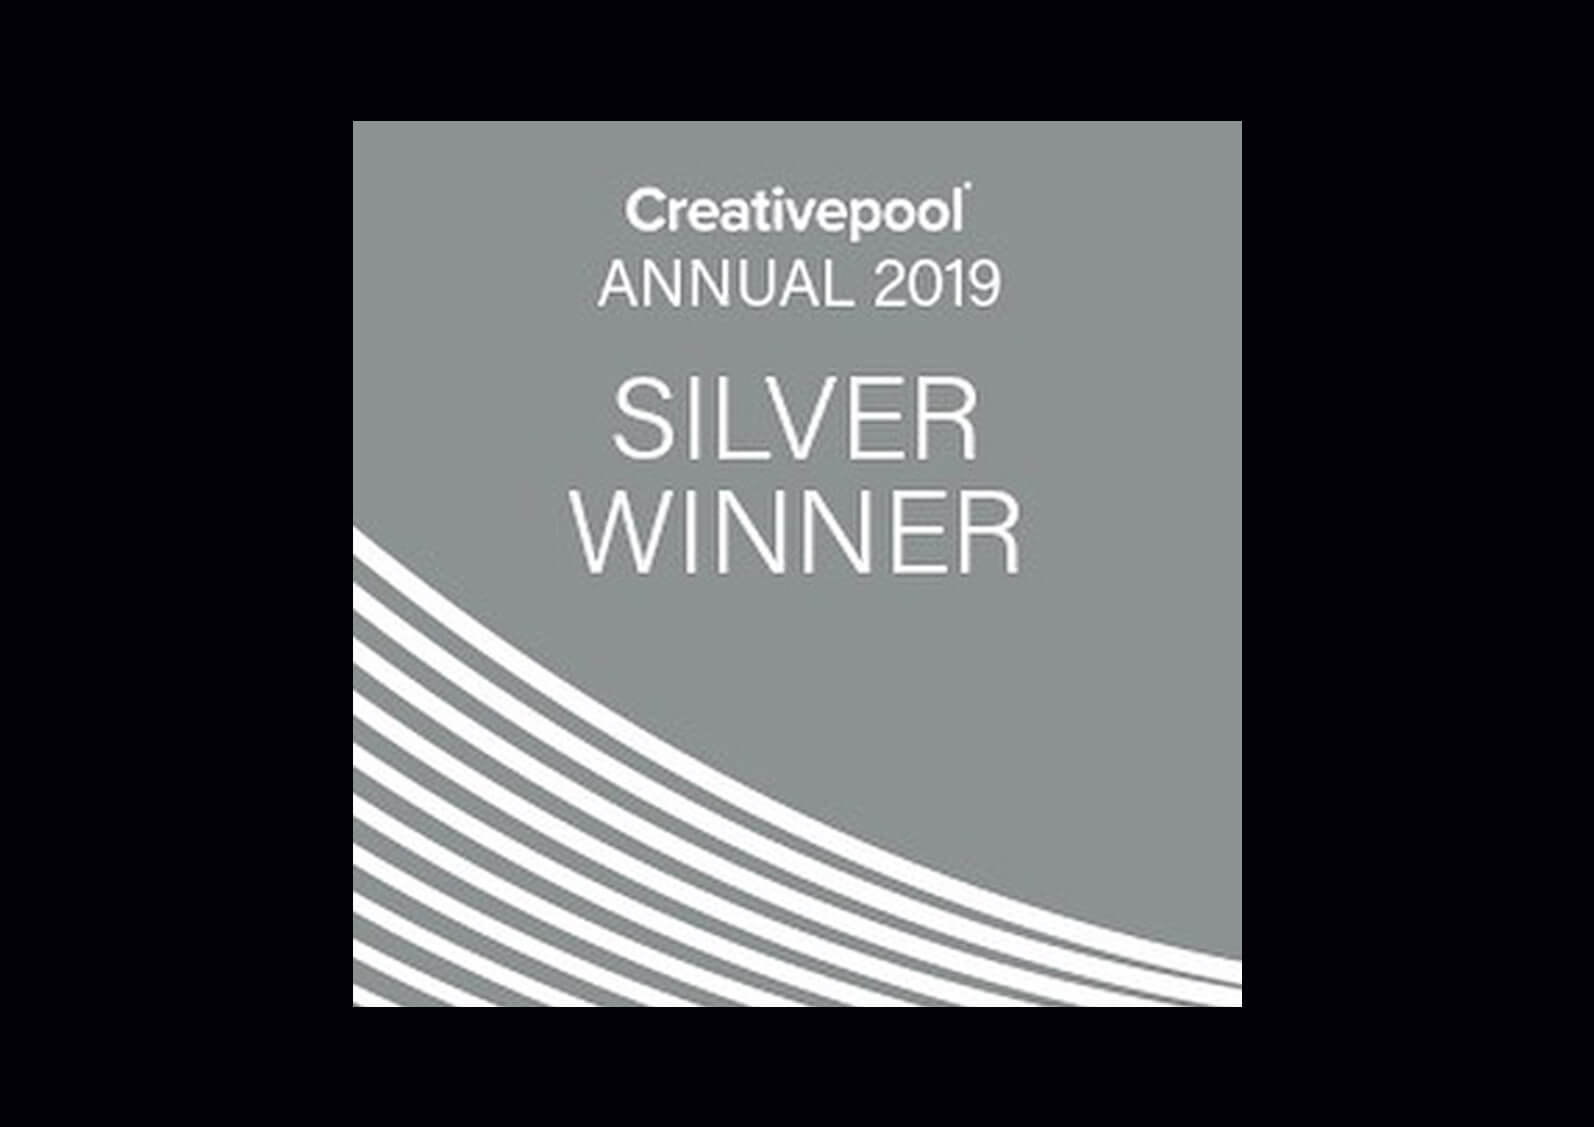 Banner showcasing silver win in 2019 creativepool awards for Petrie Magazine Issue 69